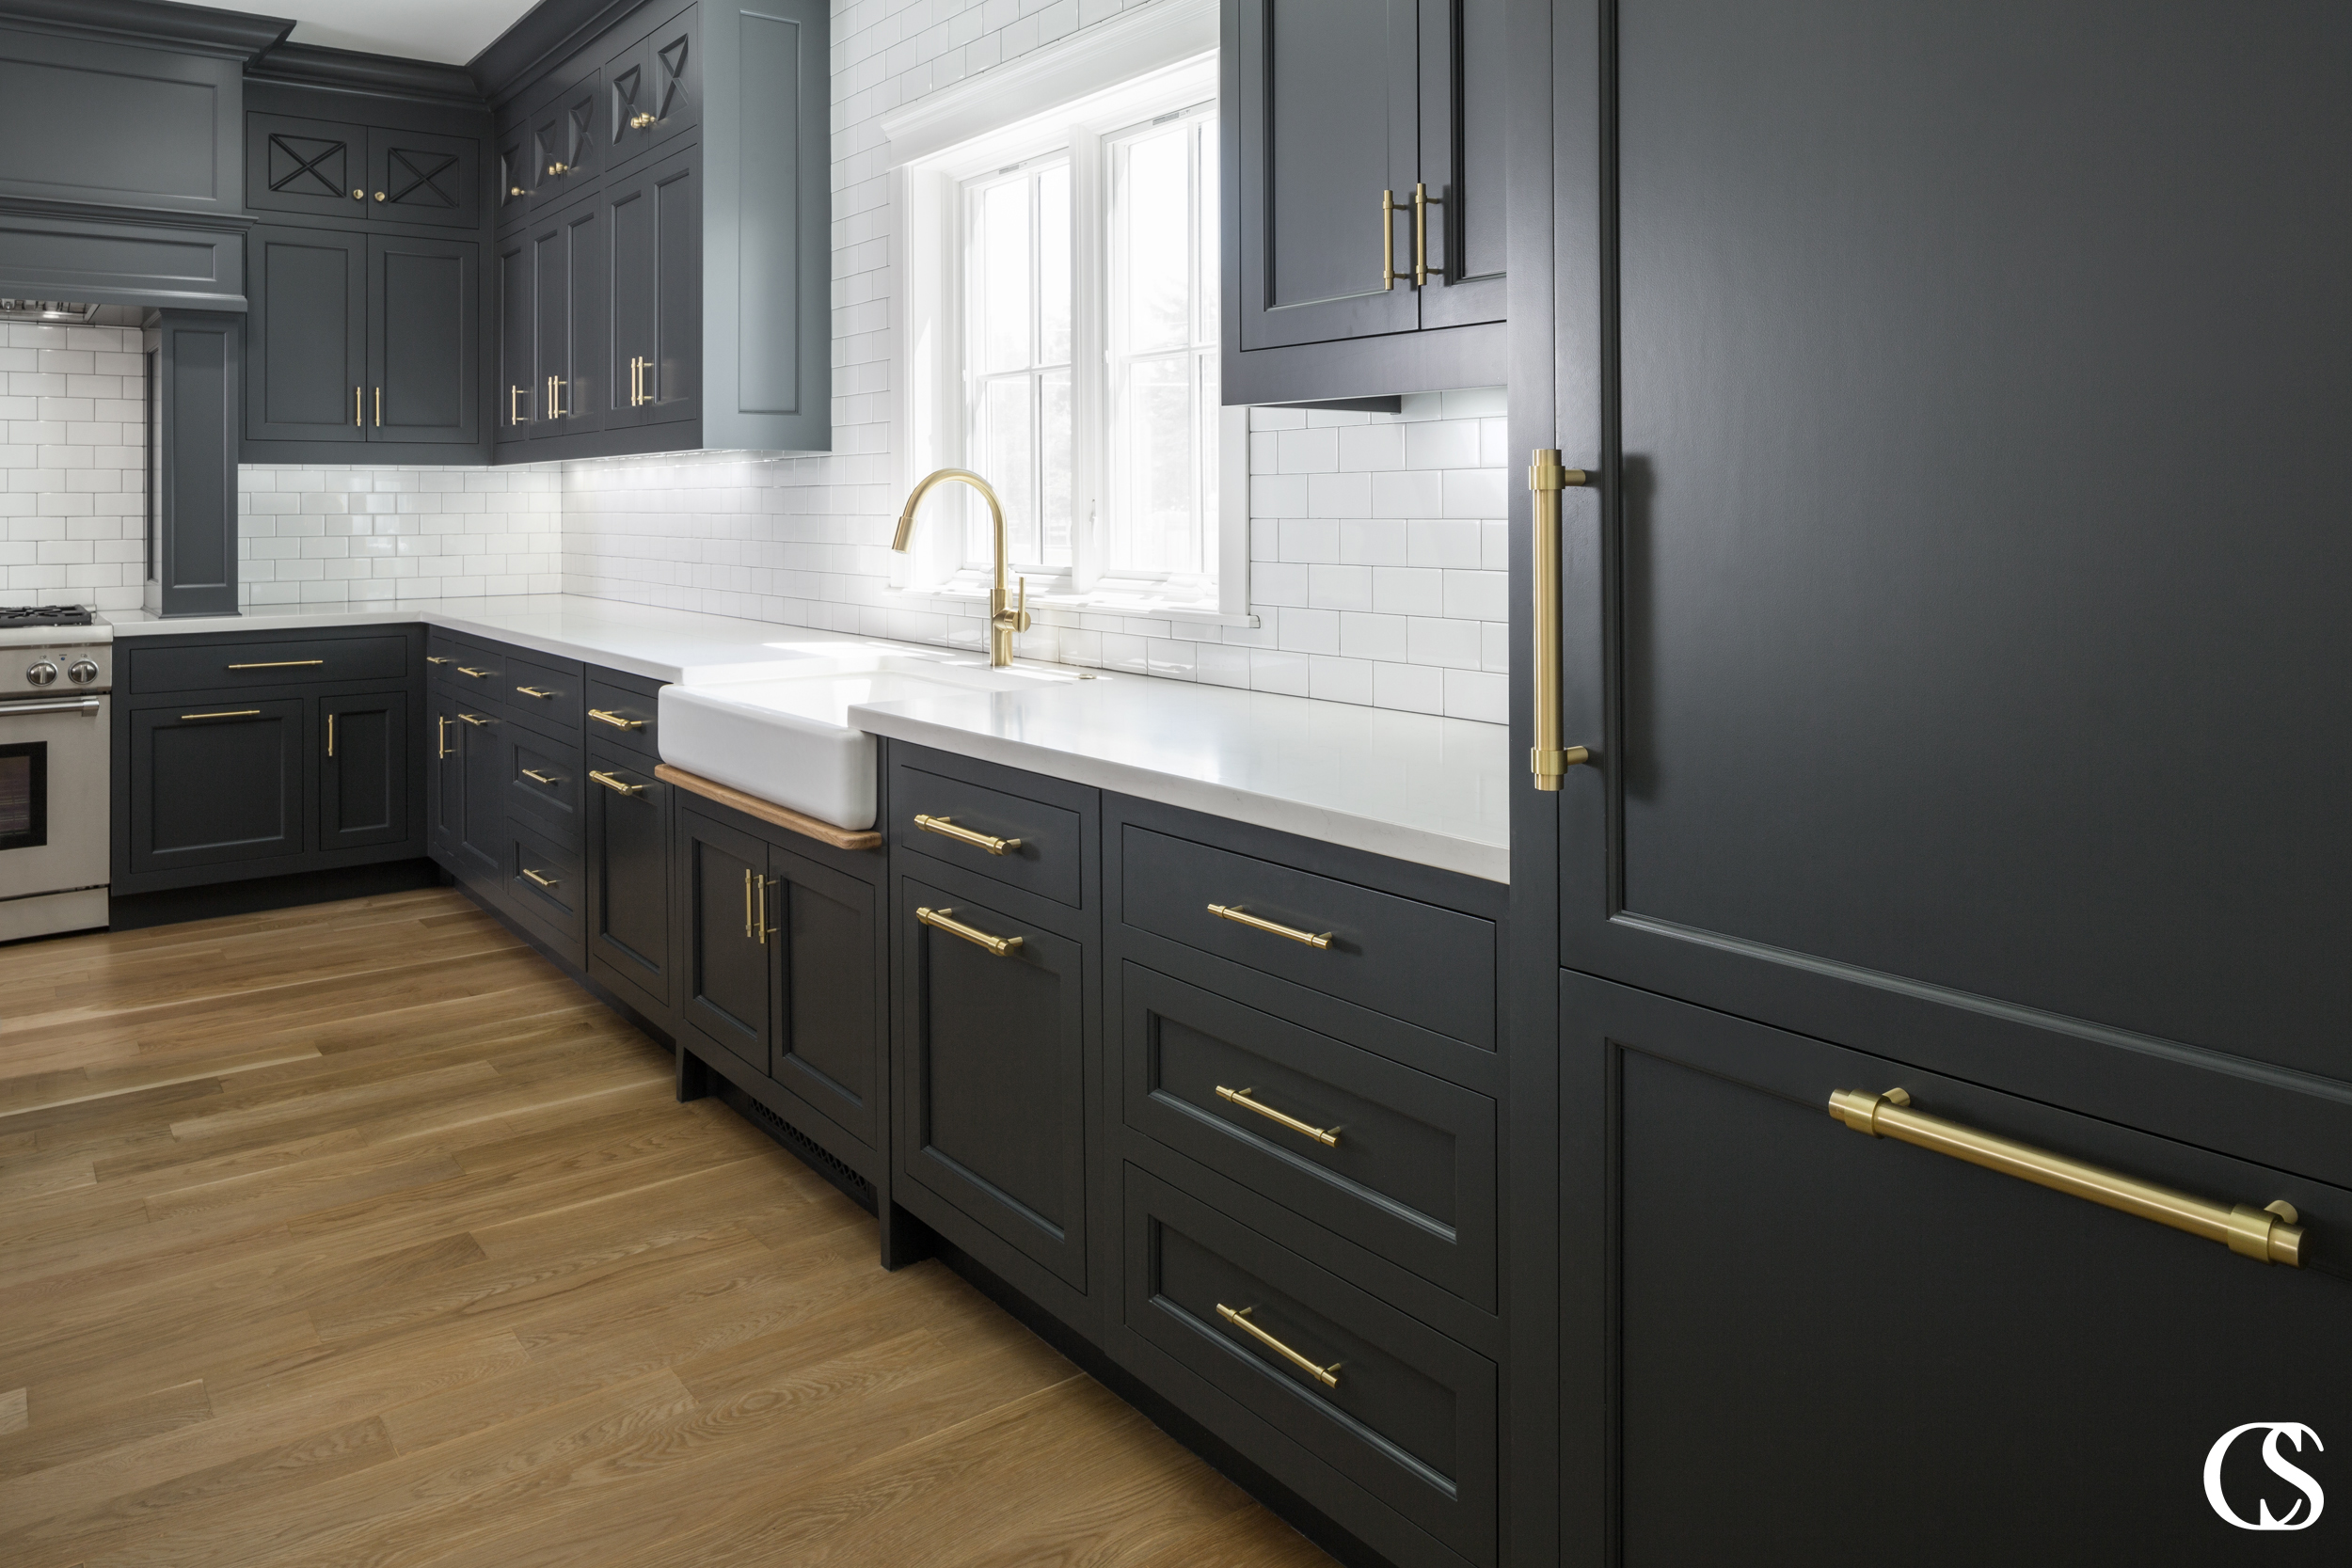 Before you choose black for your custom kitchen cabinets, think—does it fit? Black can be a moody and fun surprise but it has to make sense in YOUR home.